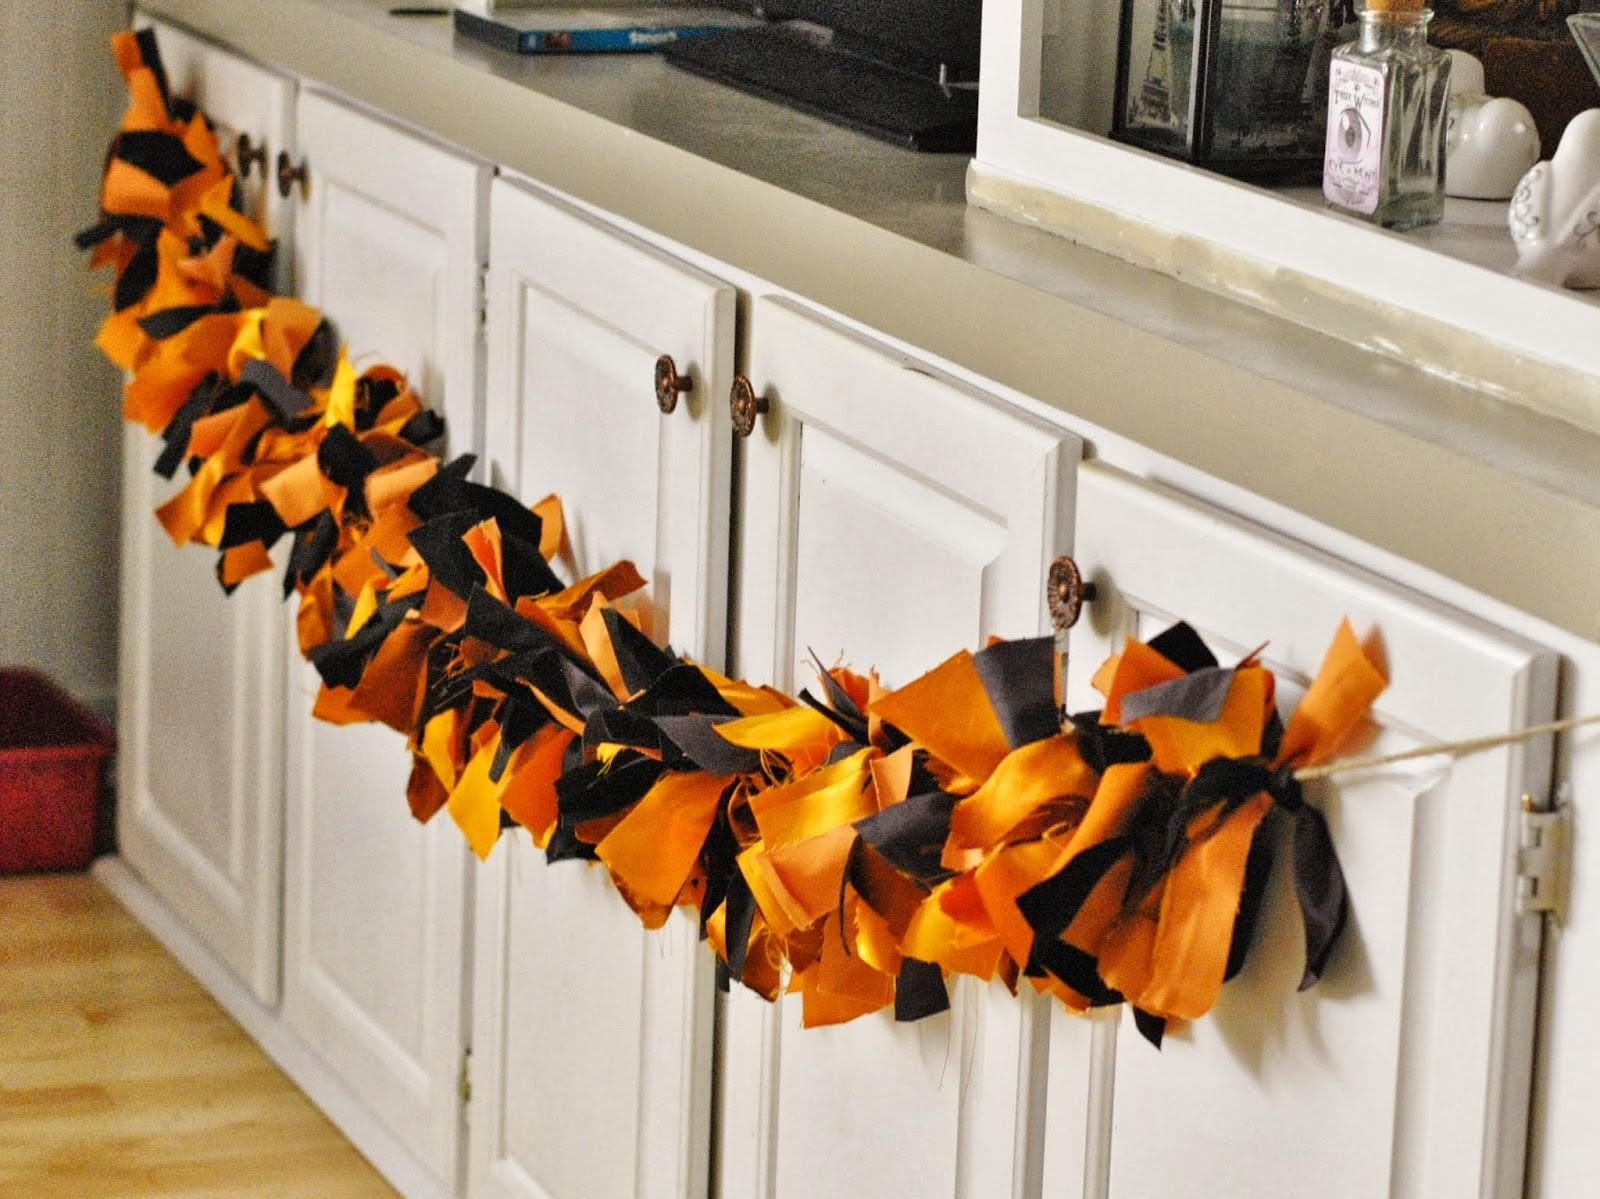 39 Sophisticated Diy Halloween Garlands That Combine Style With Practicality For 2021 Inspire Design Ideas Decoratorist